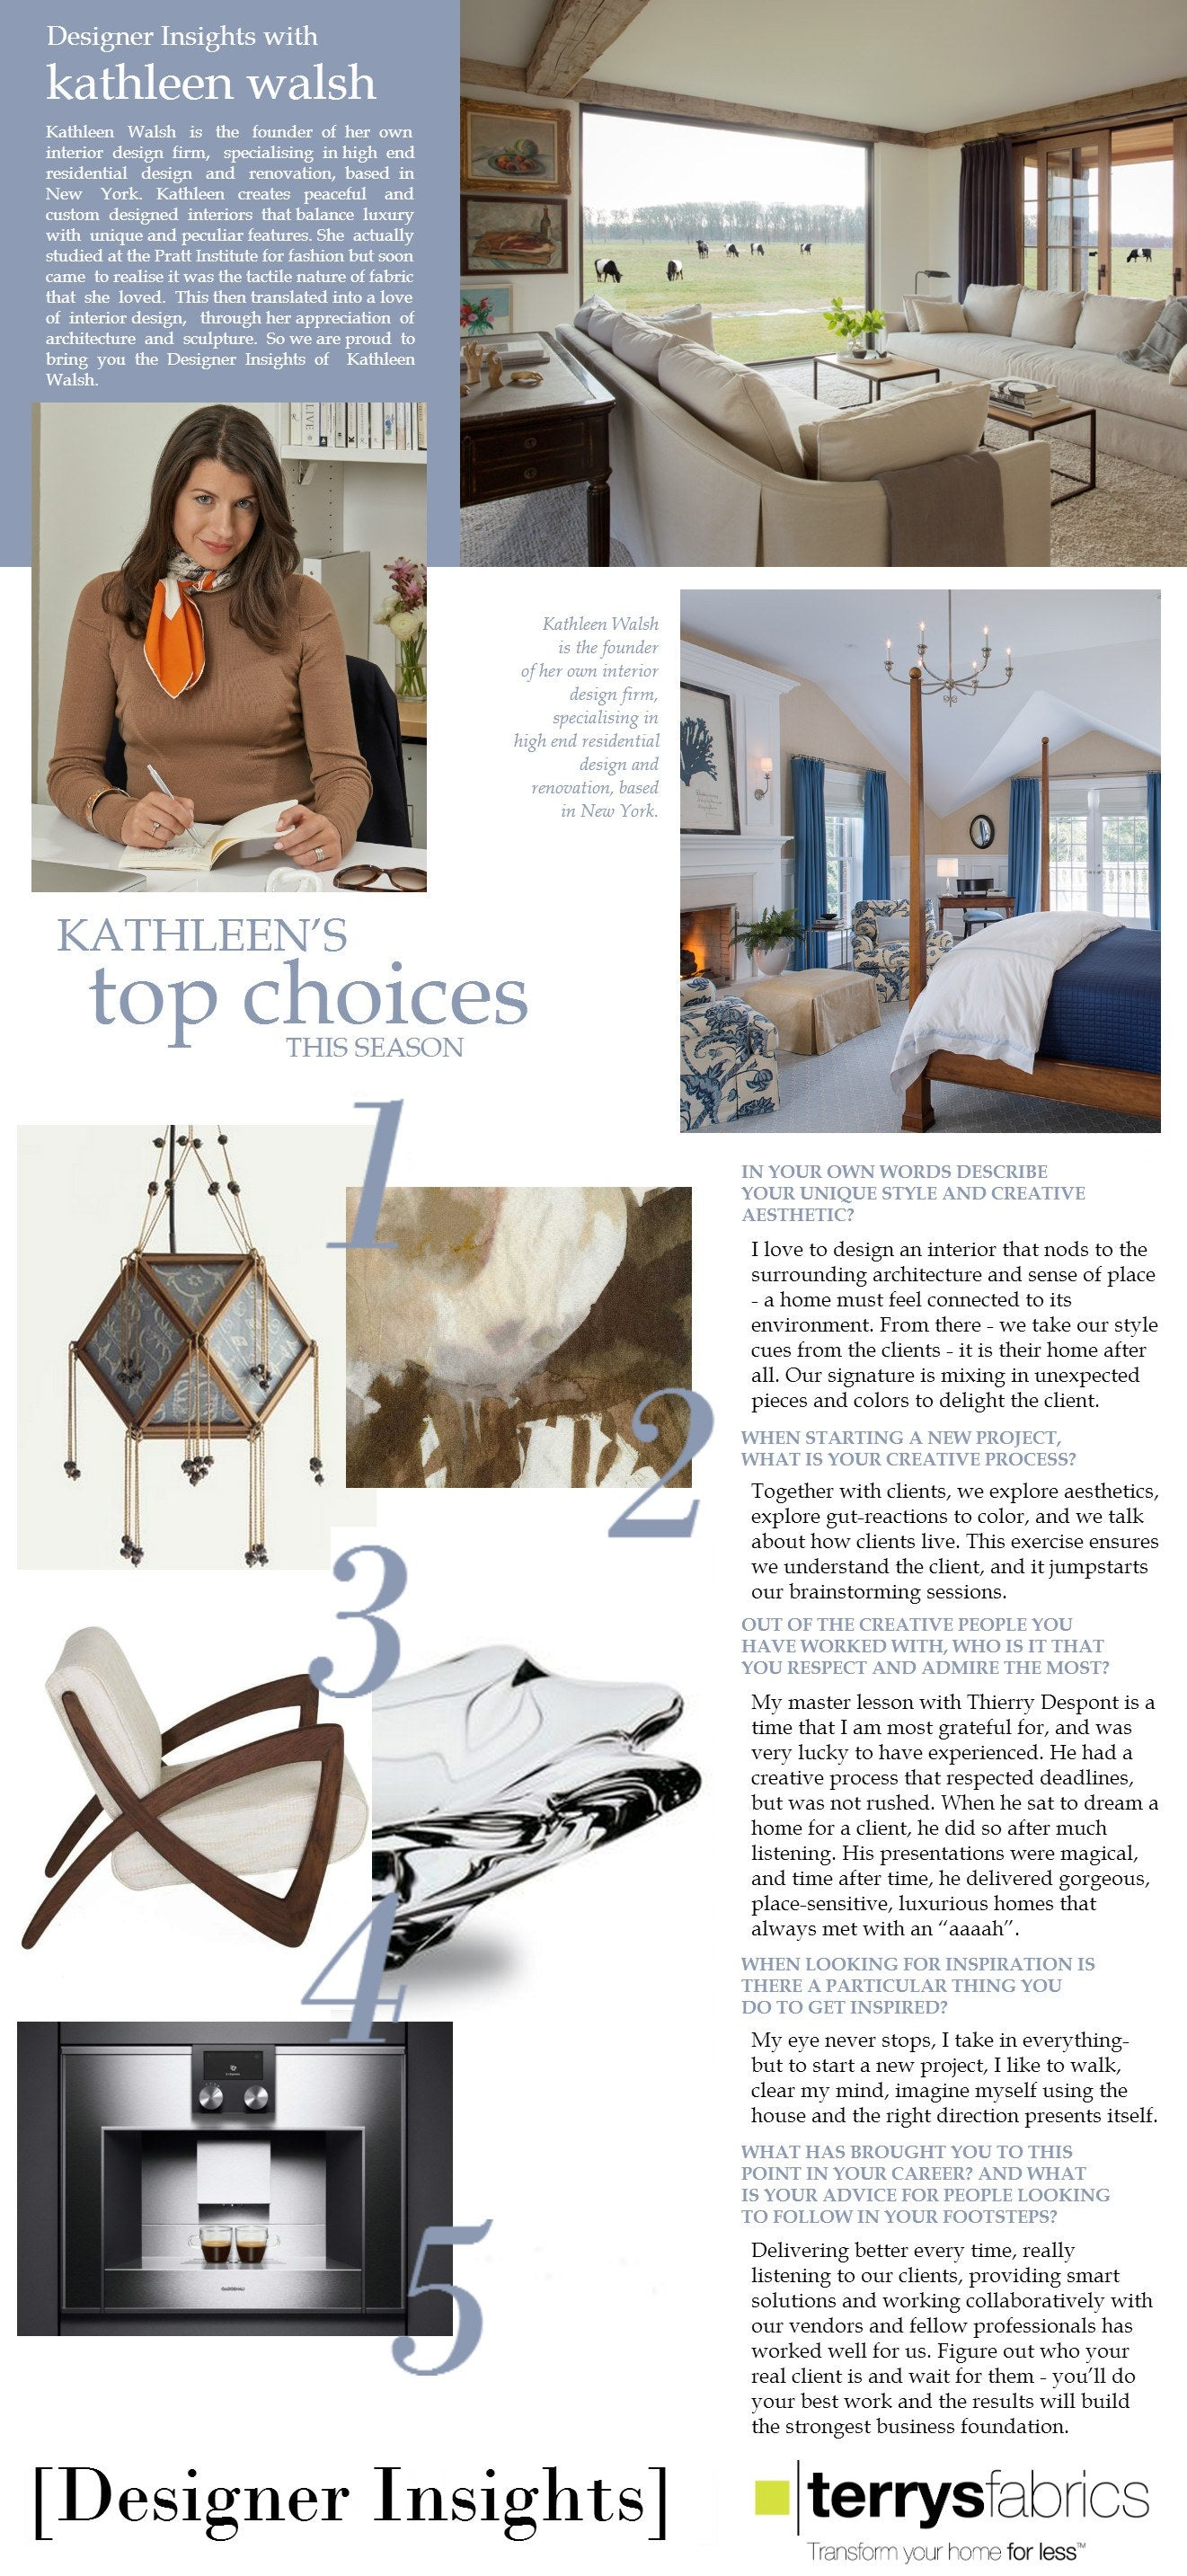 Designer Insights - Kathleen Walsh